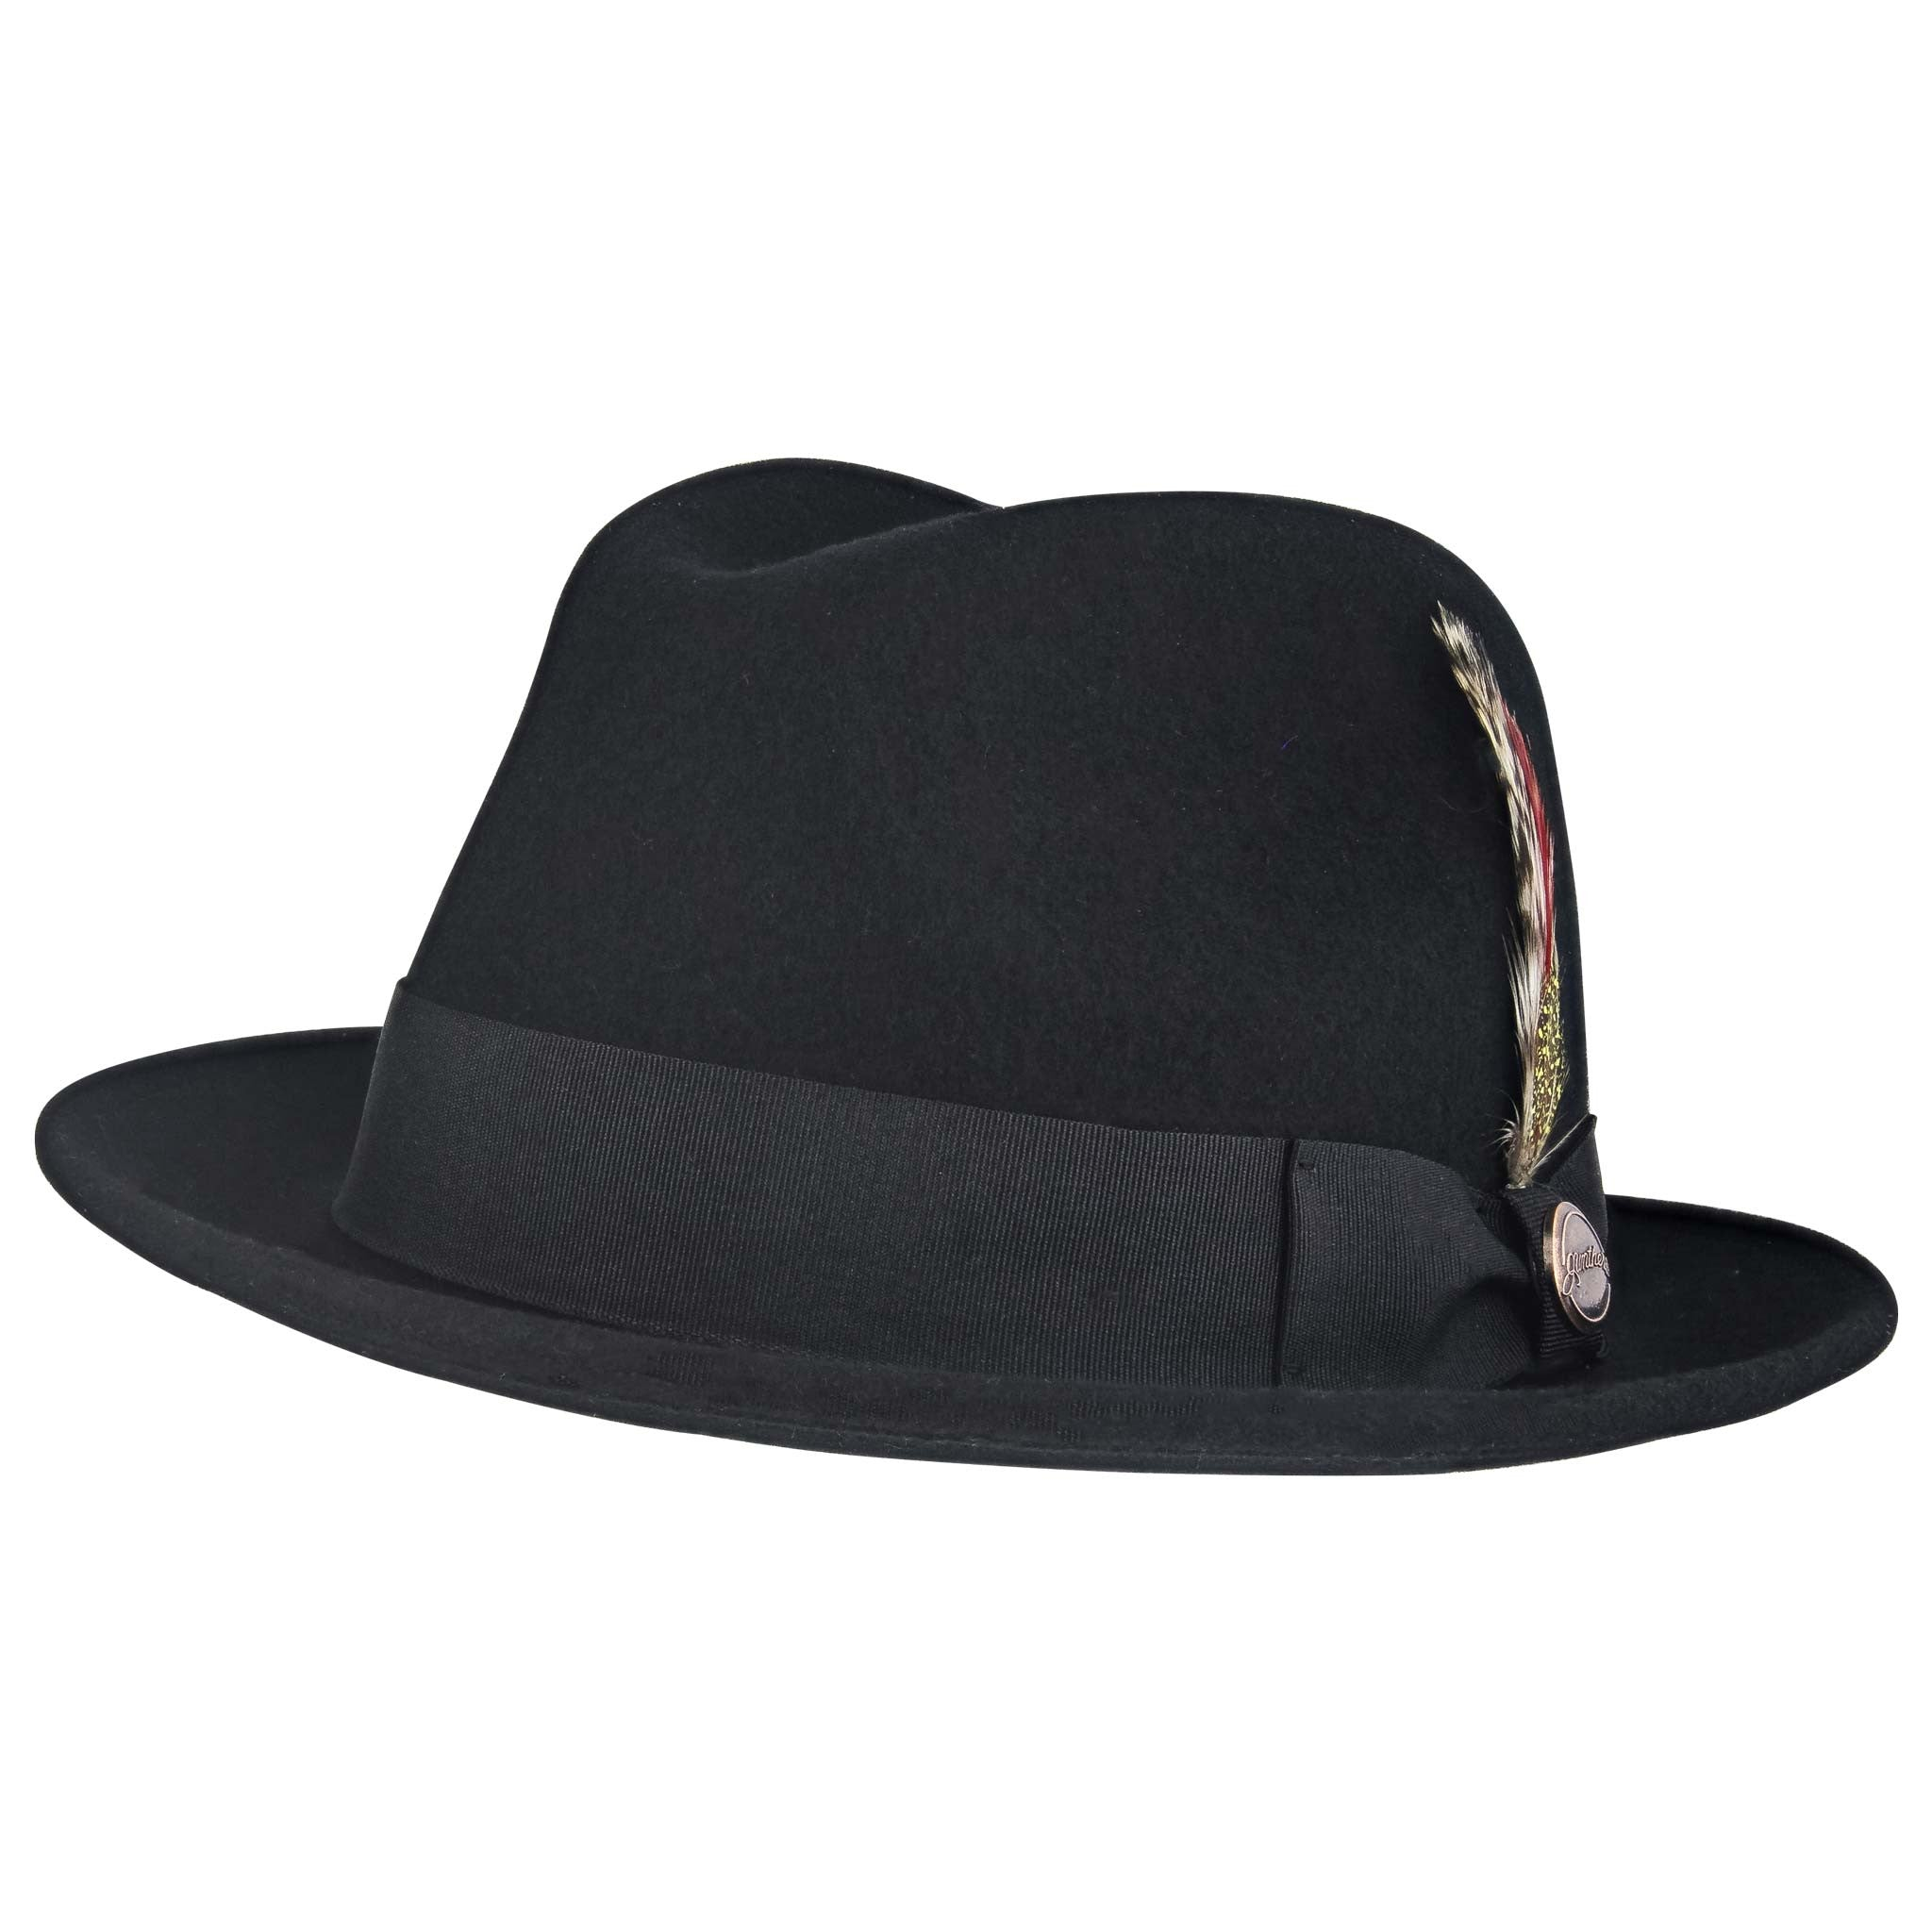 b9affe6b4e9 La Cuatro Fedora Black Front View of the Hat ...